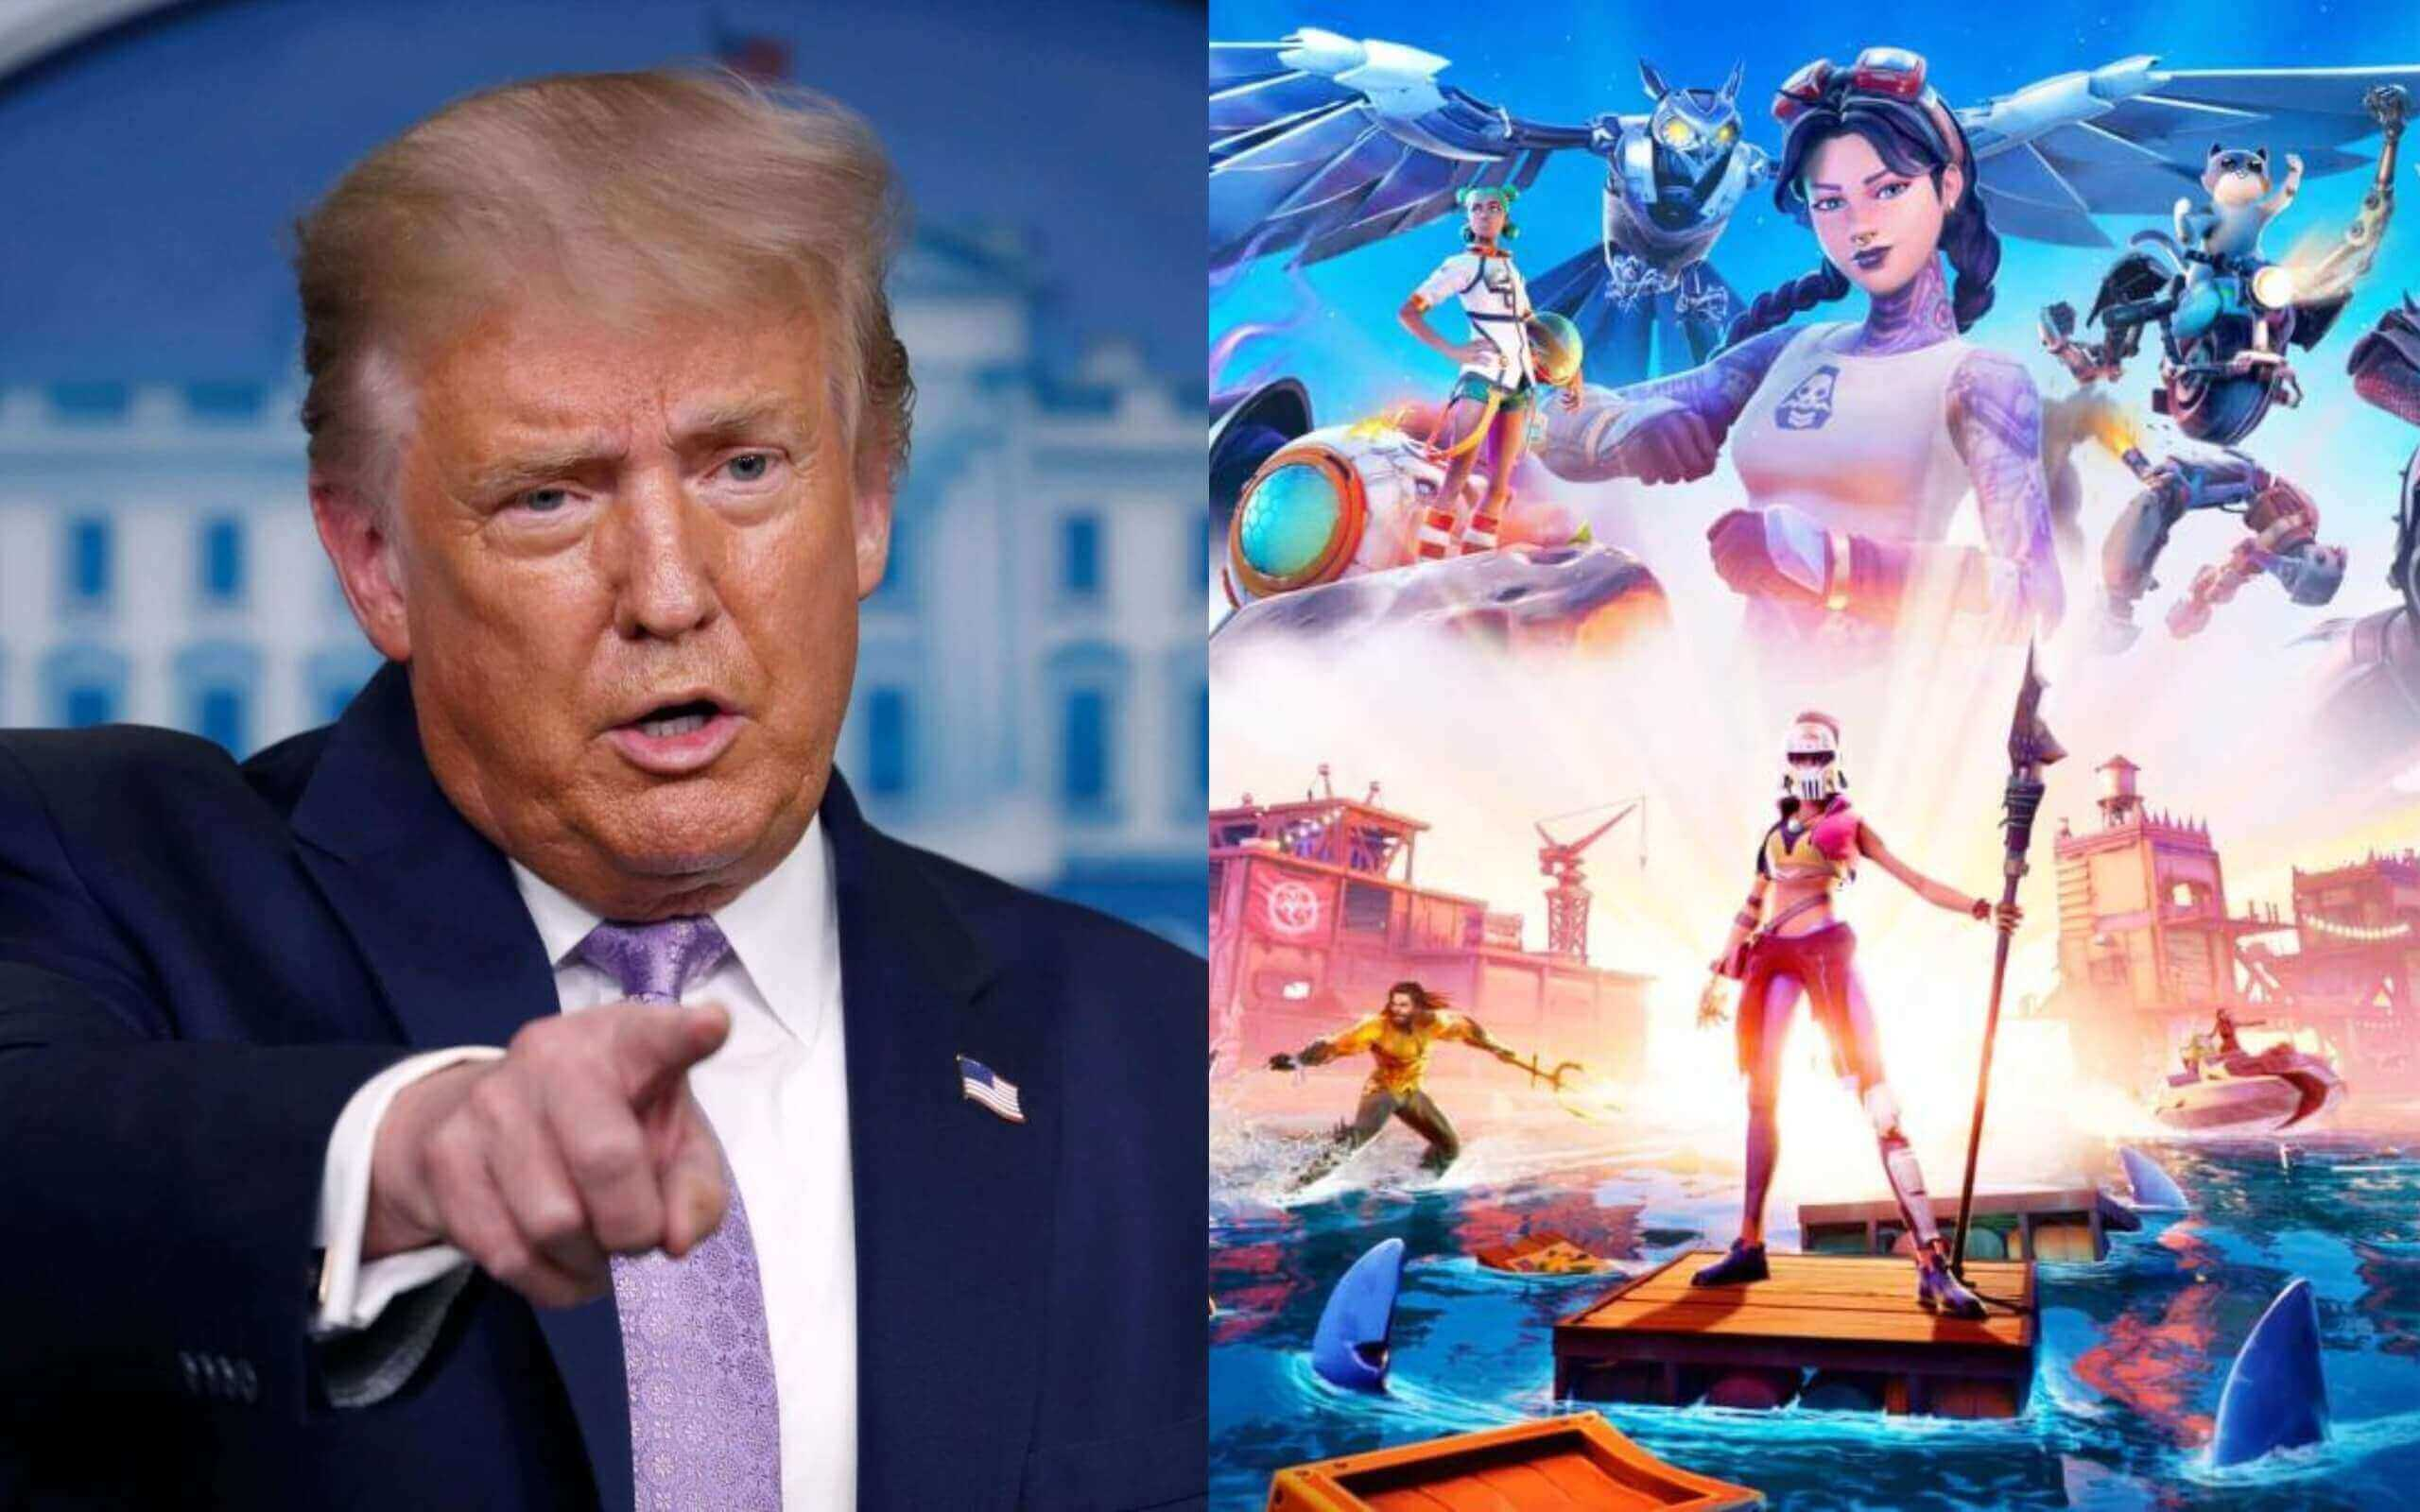 Fortnite will not be affected by Trump's Tencent ban